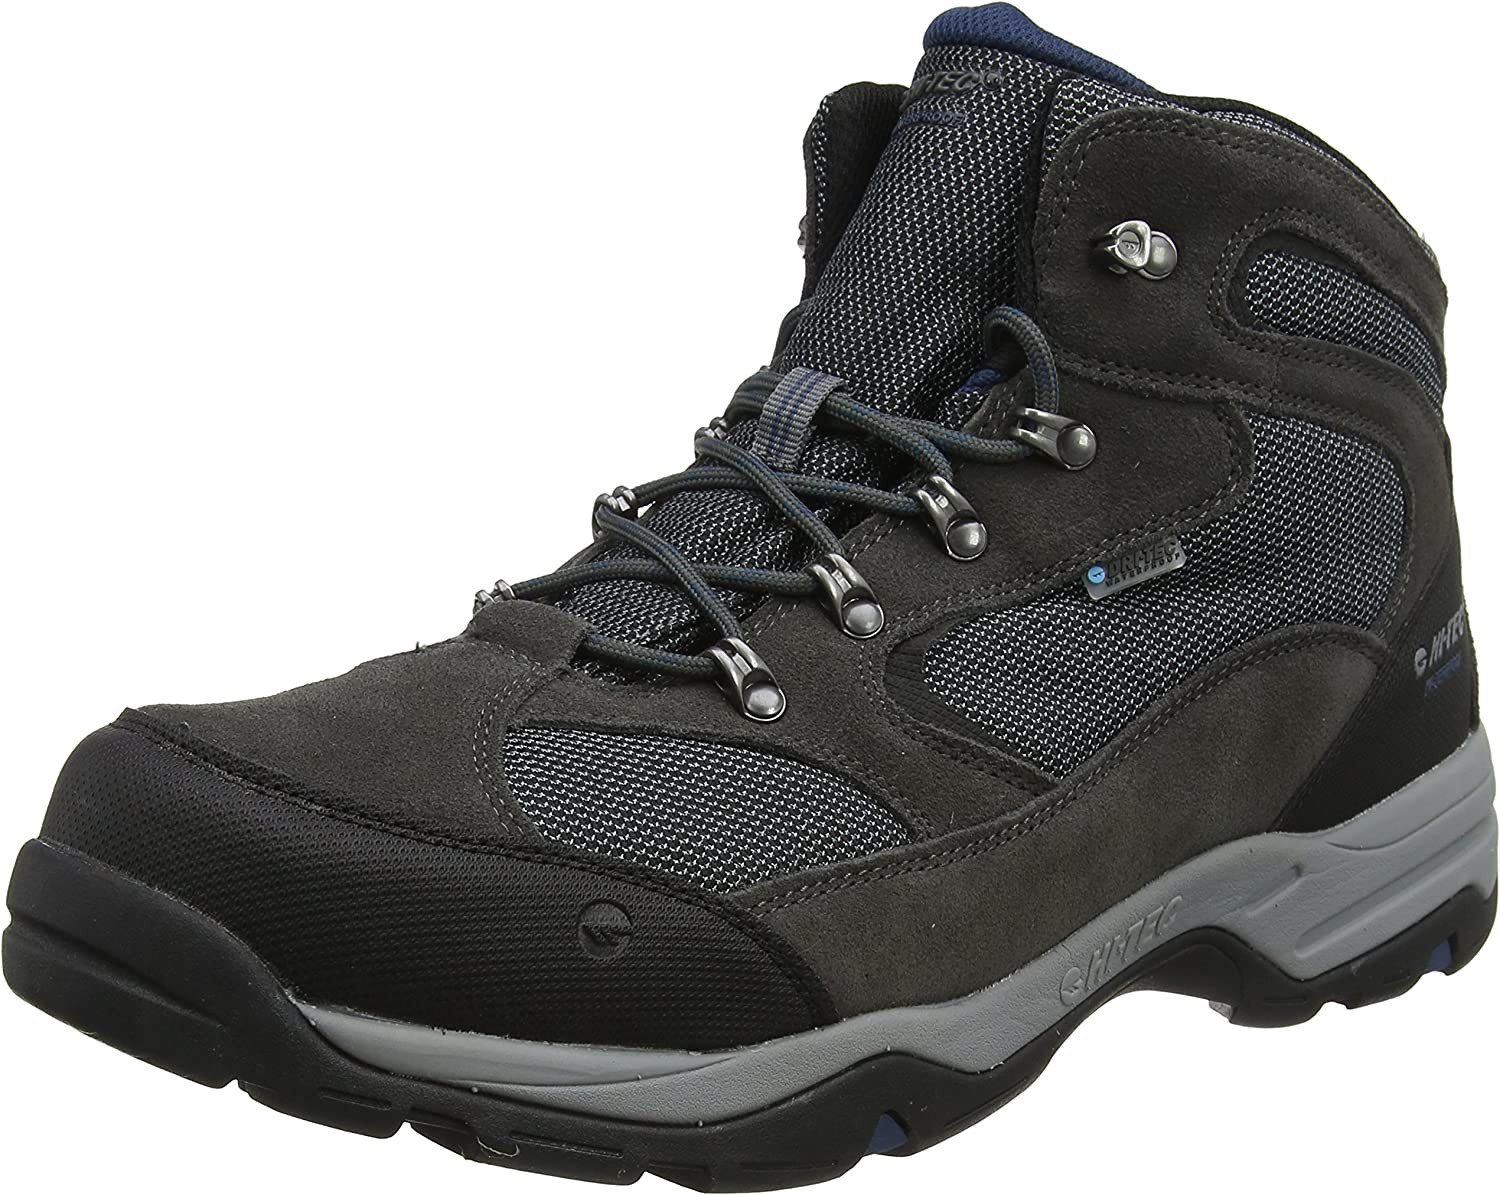 HiTec Men's Storm Waterproof Light Hiking Boots